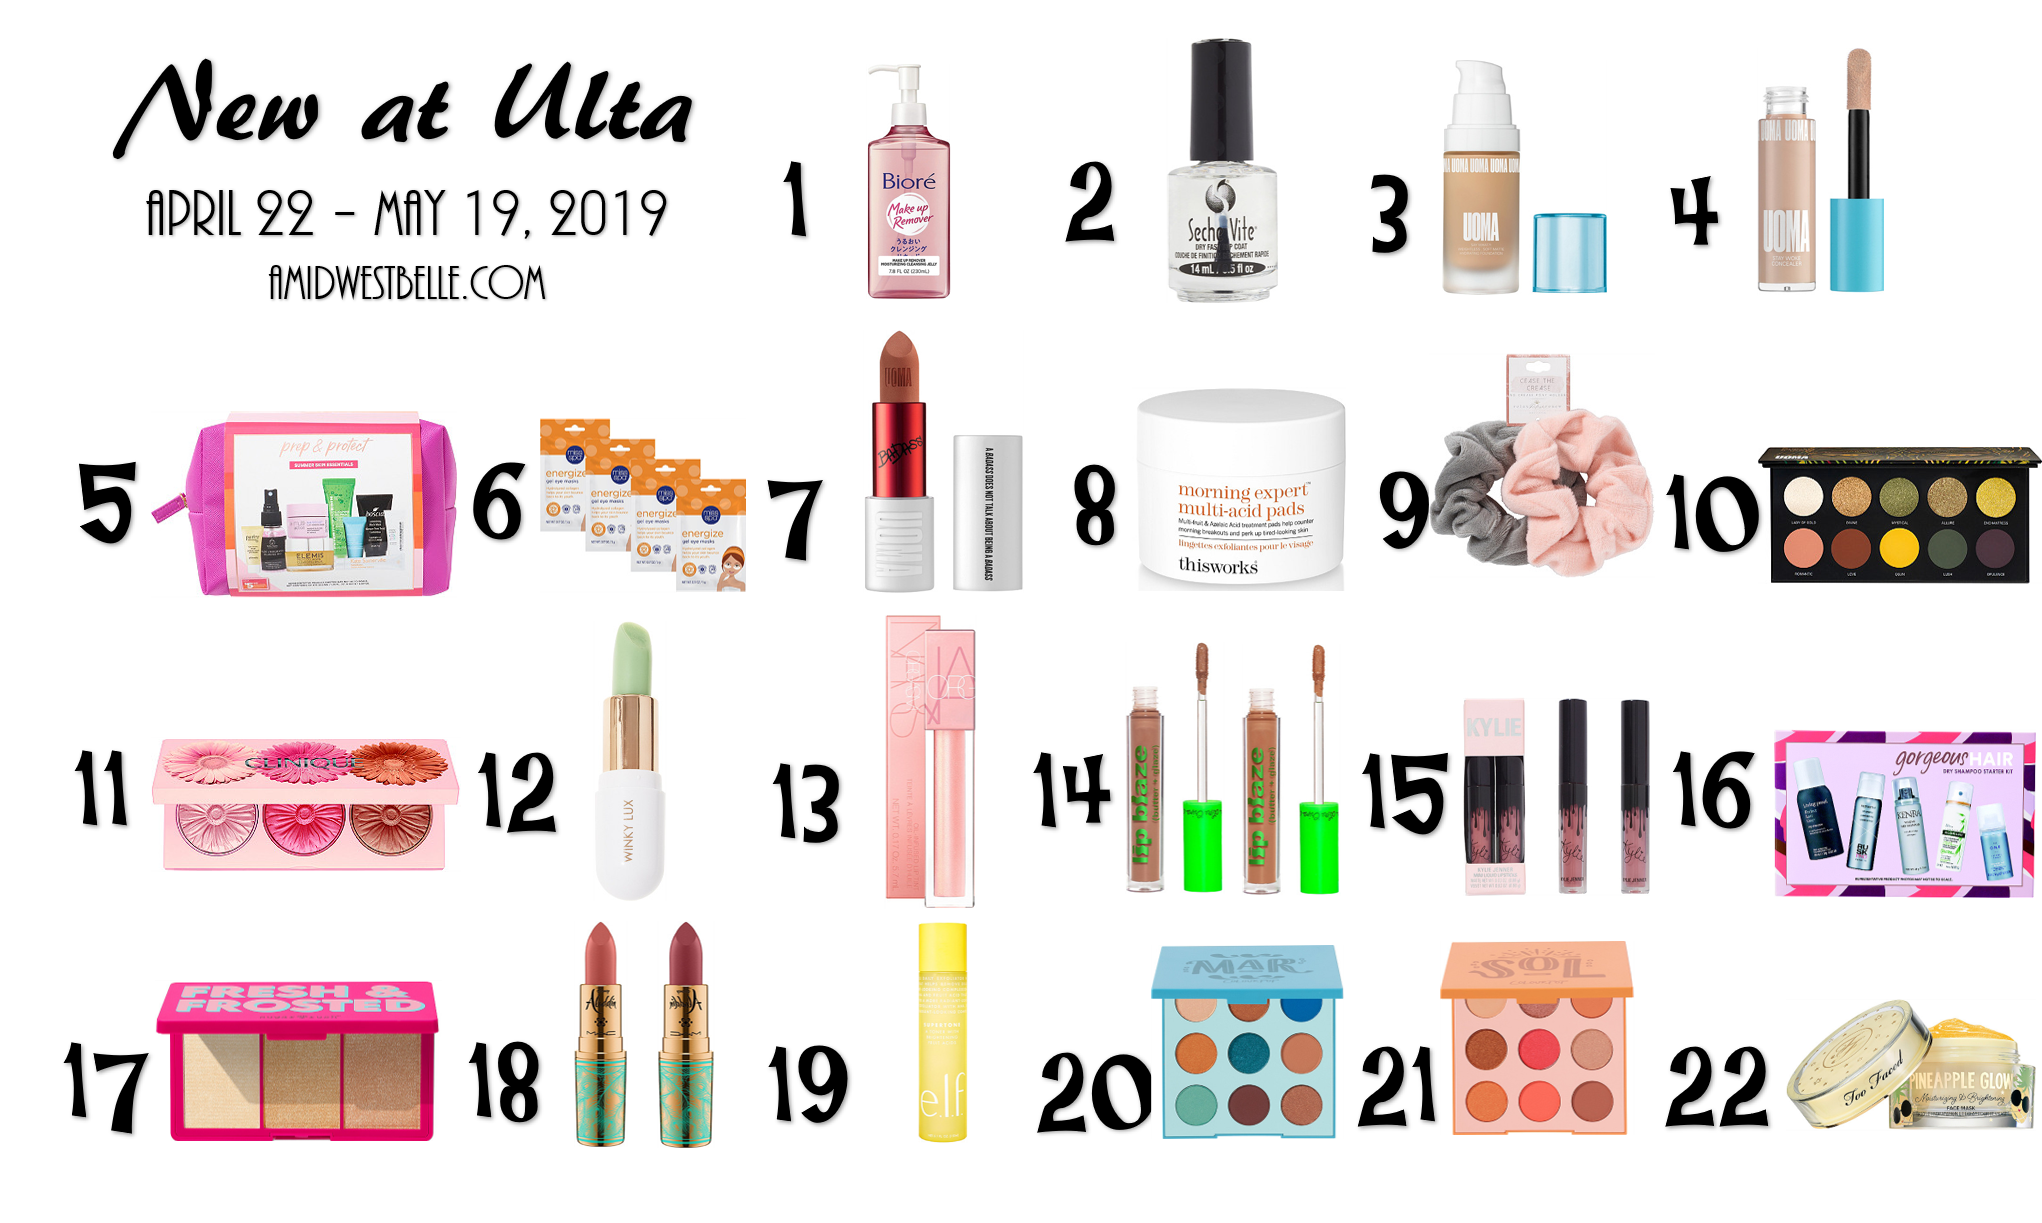 New at Ulta | April 22 - May 19, 2019 - A Midwest Belle